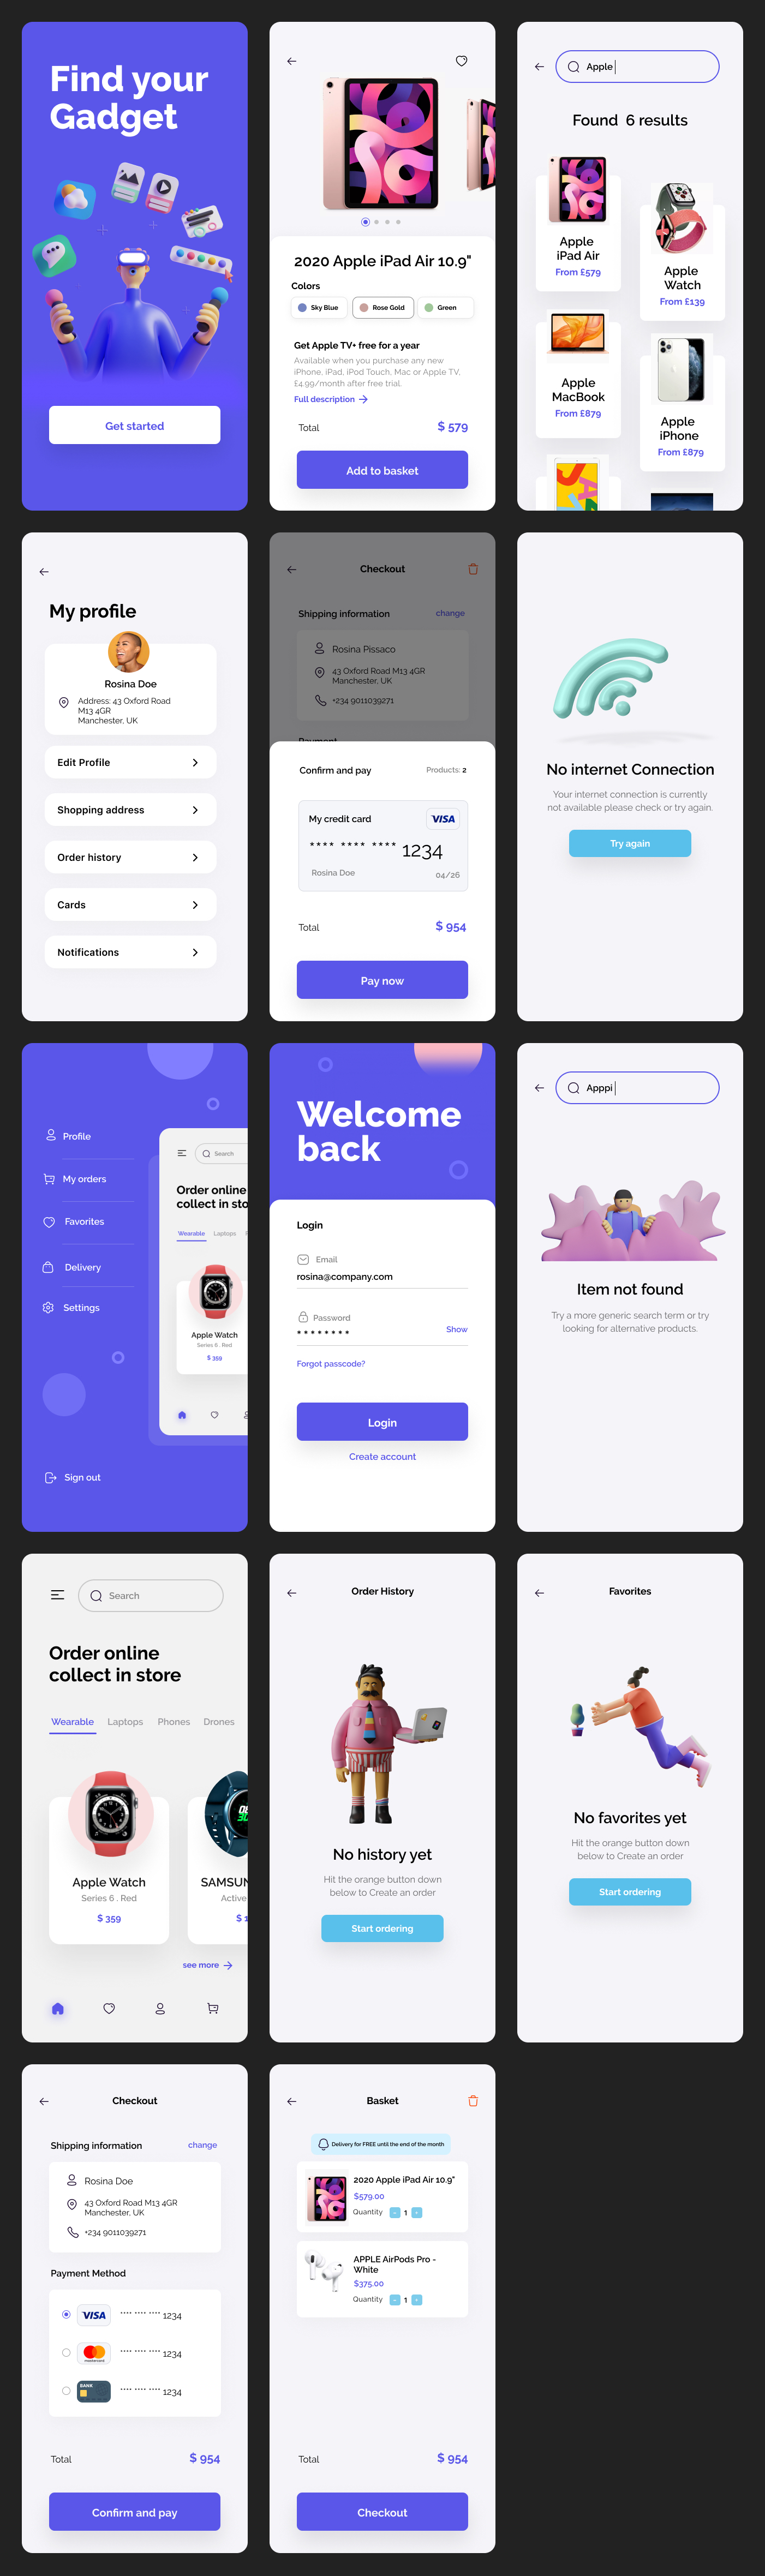 eCommerce Free App UI Kit - Free mobile UI Kit designed exclusively for Figma by Rosina Pissaco. It features 14+ mobile screen pages to get you started on your projects.